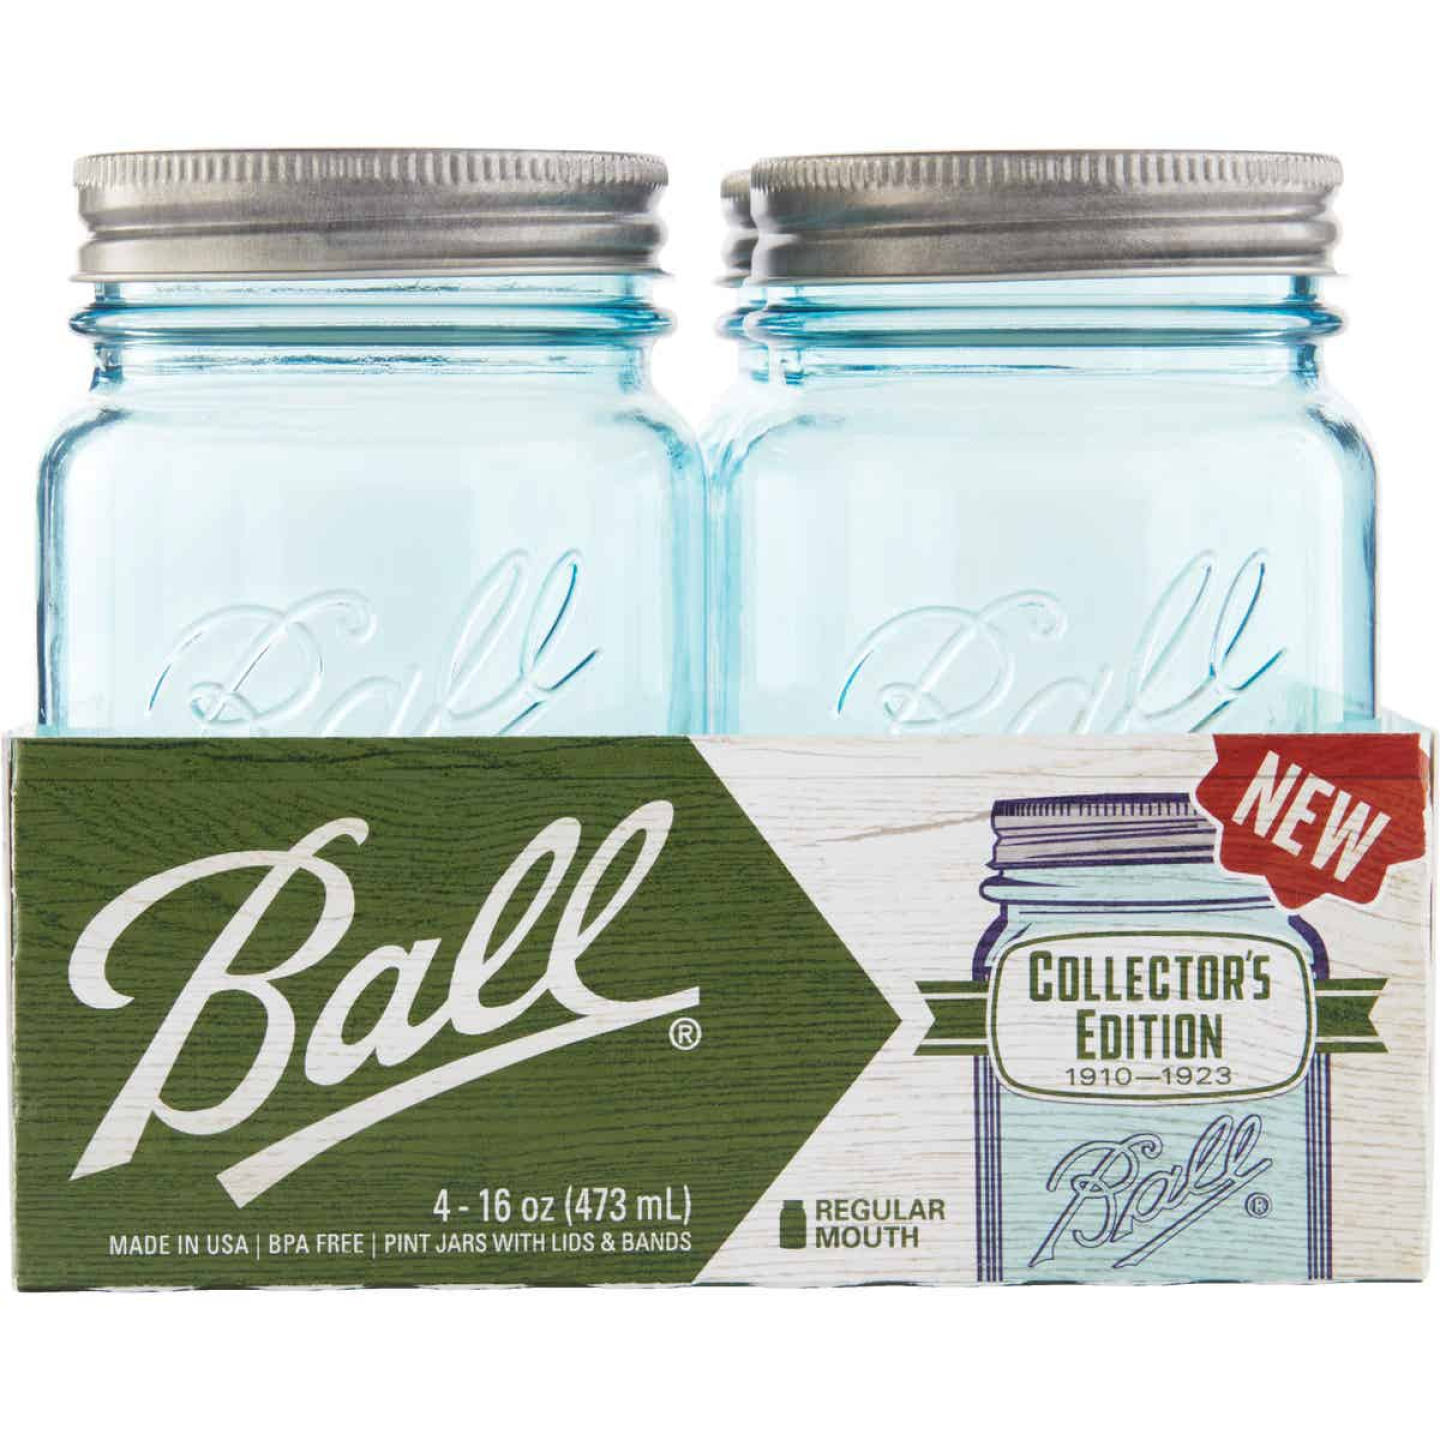 Ball Collector's Edition Pint Regular Mouth Aqua Vintage Canning Jar (4-Count) Image 2